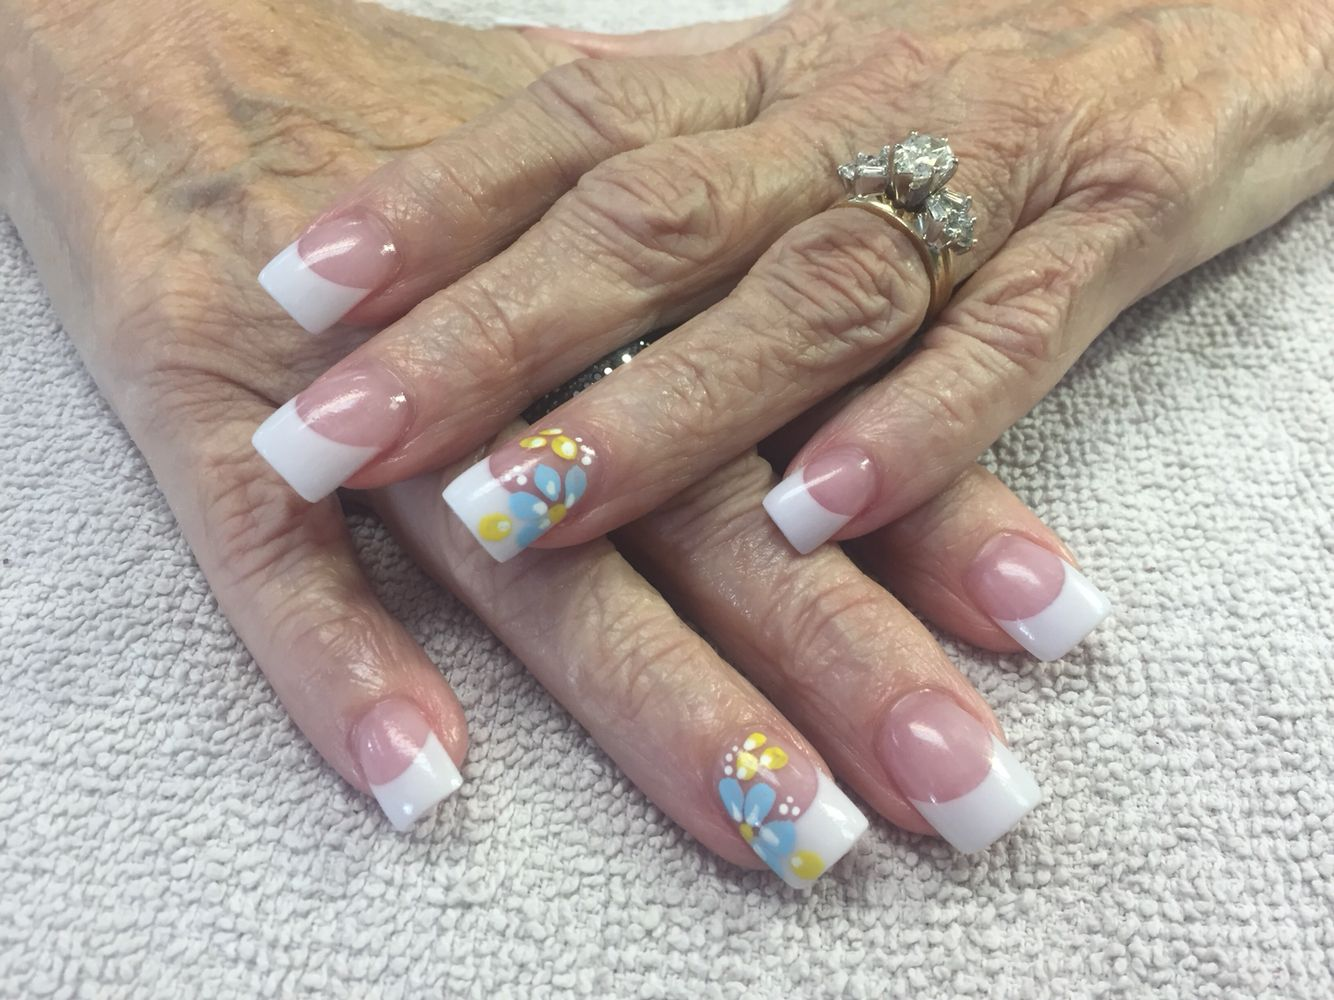 Forever french acrylic nails with hand painted design by Shannon ...